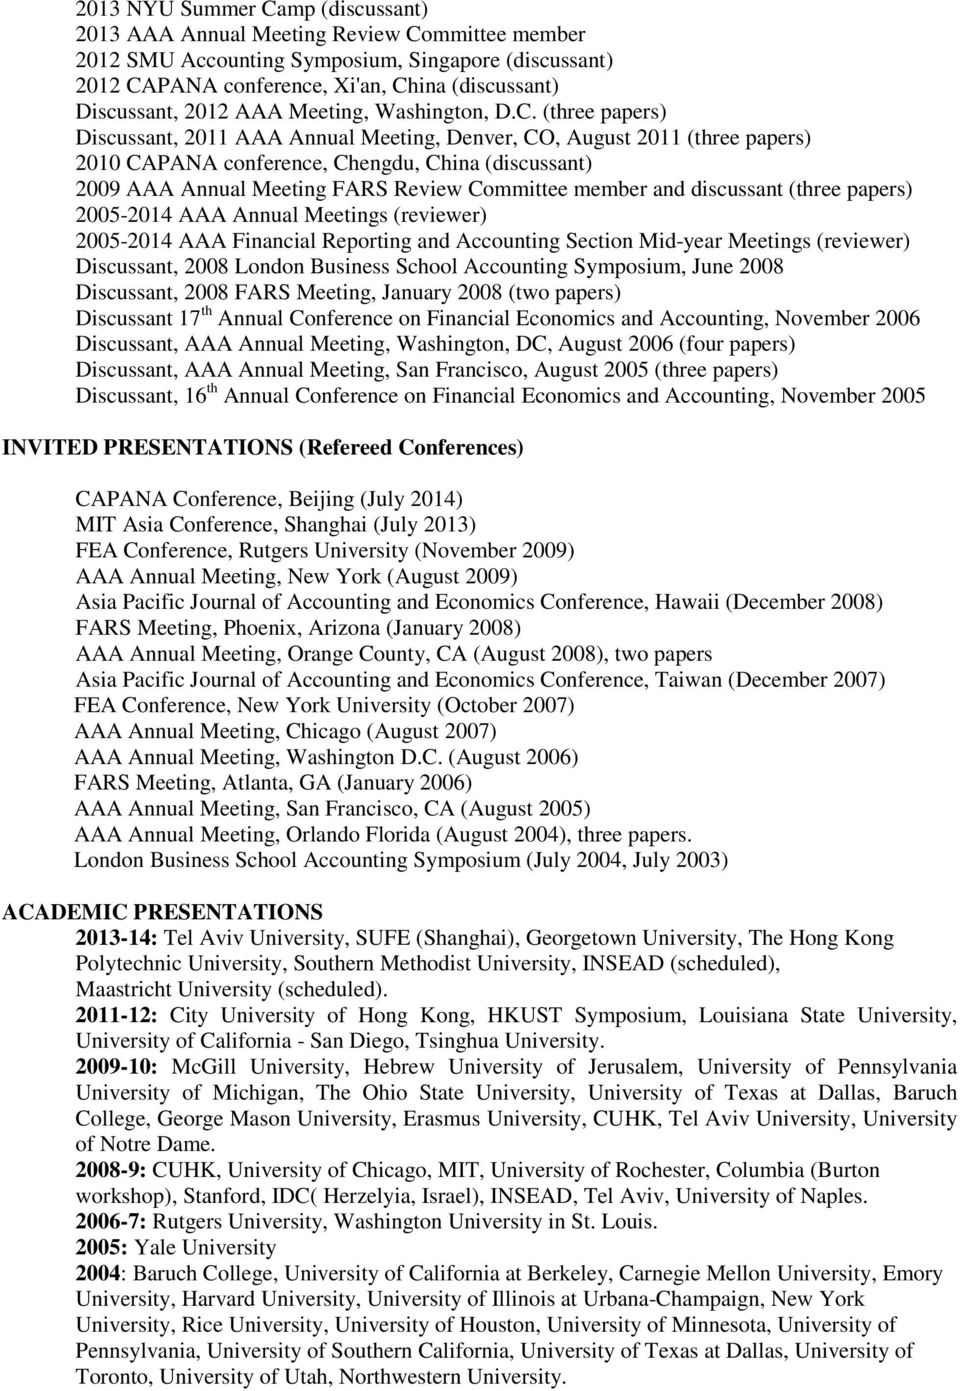 (three papers) Discussant, 2011 AAA Annual Meeting, Denver, CO, August 2011 (three papers) 2010 CAPANA conference, Chengdu, China (discussant) 2009 AAA Annual Meeting FARS Review Committee member and